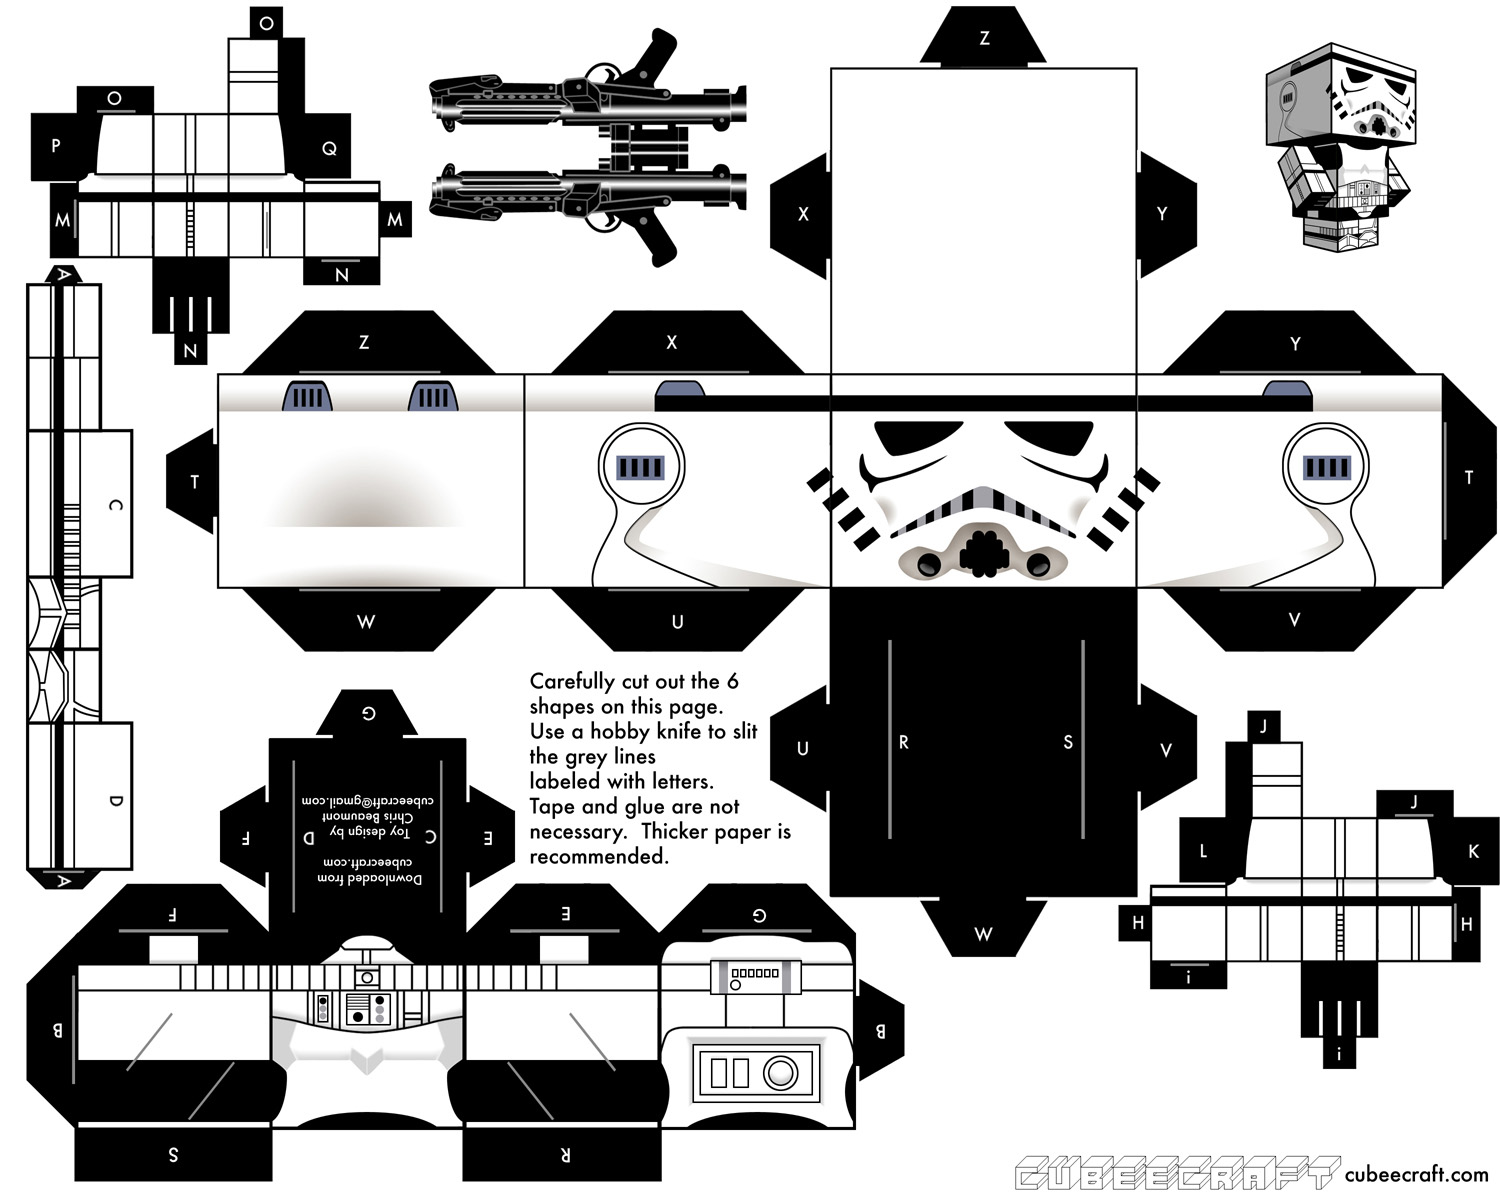 http://www.paper-toy.fr/wp-content/uploads/2011/08/Blog_Paper_Toy_papertoy_Stormtrooper_Cubeecraft_template.jpg